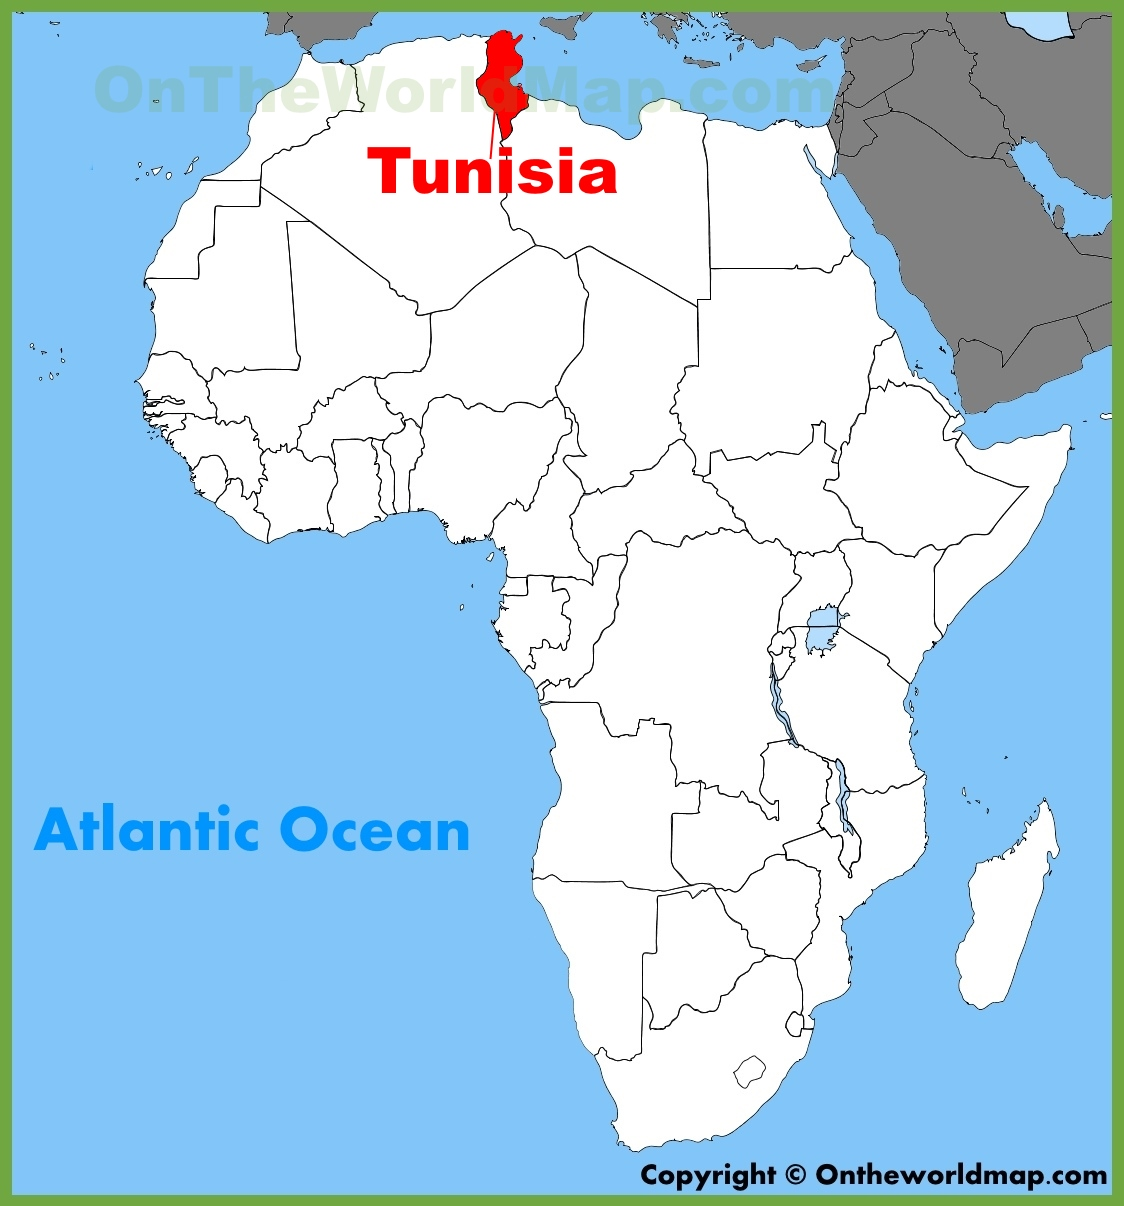 Tunisia Location On The Africa Map - Tunisia country political map